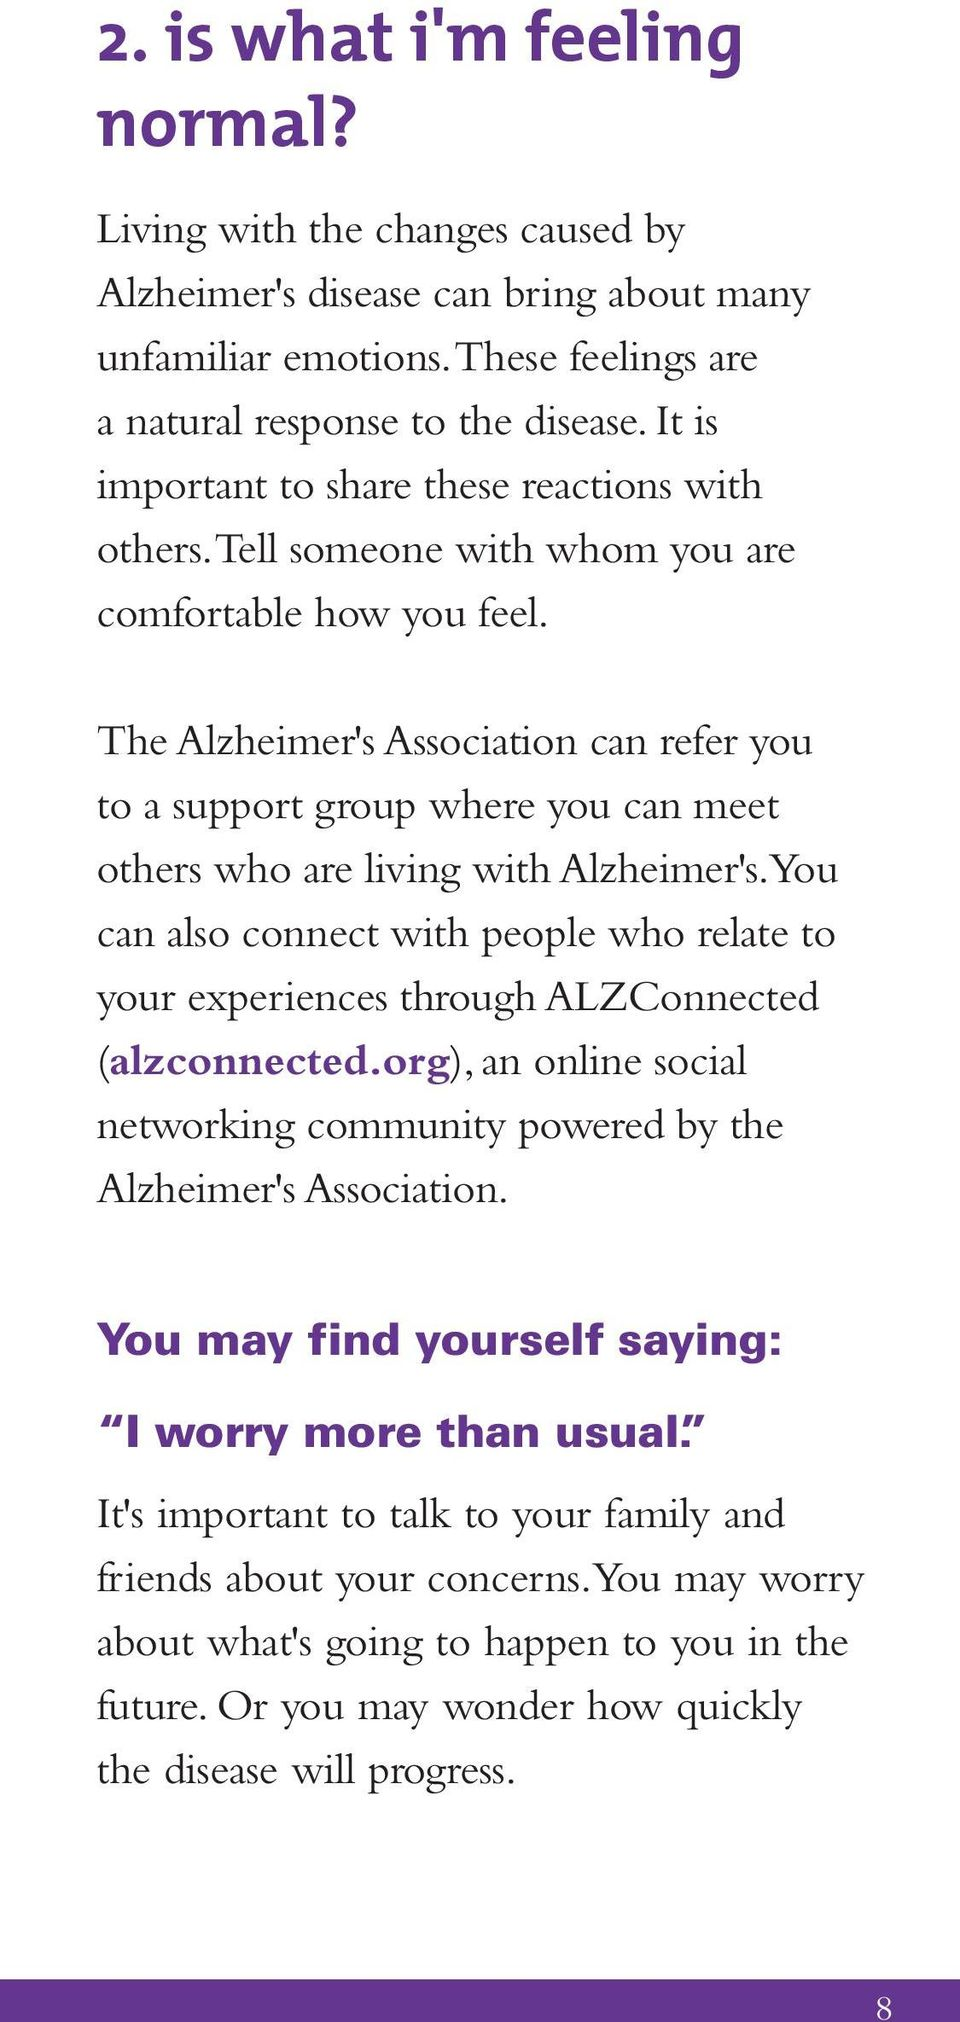 The Alzheimer's Association can refer you to a support group where you can meet others who are living with Alzheimer's.